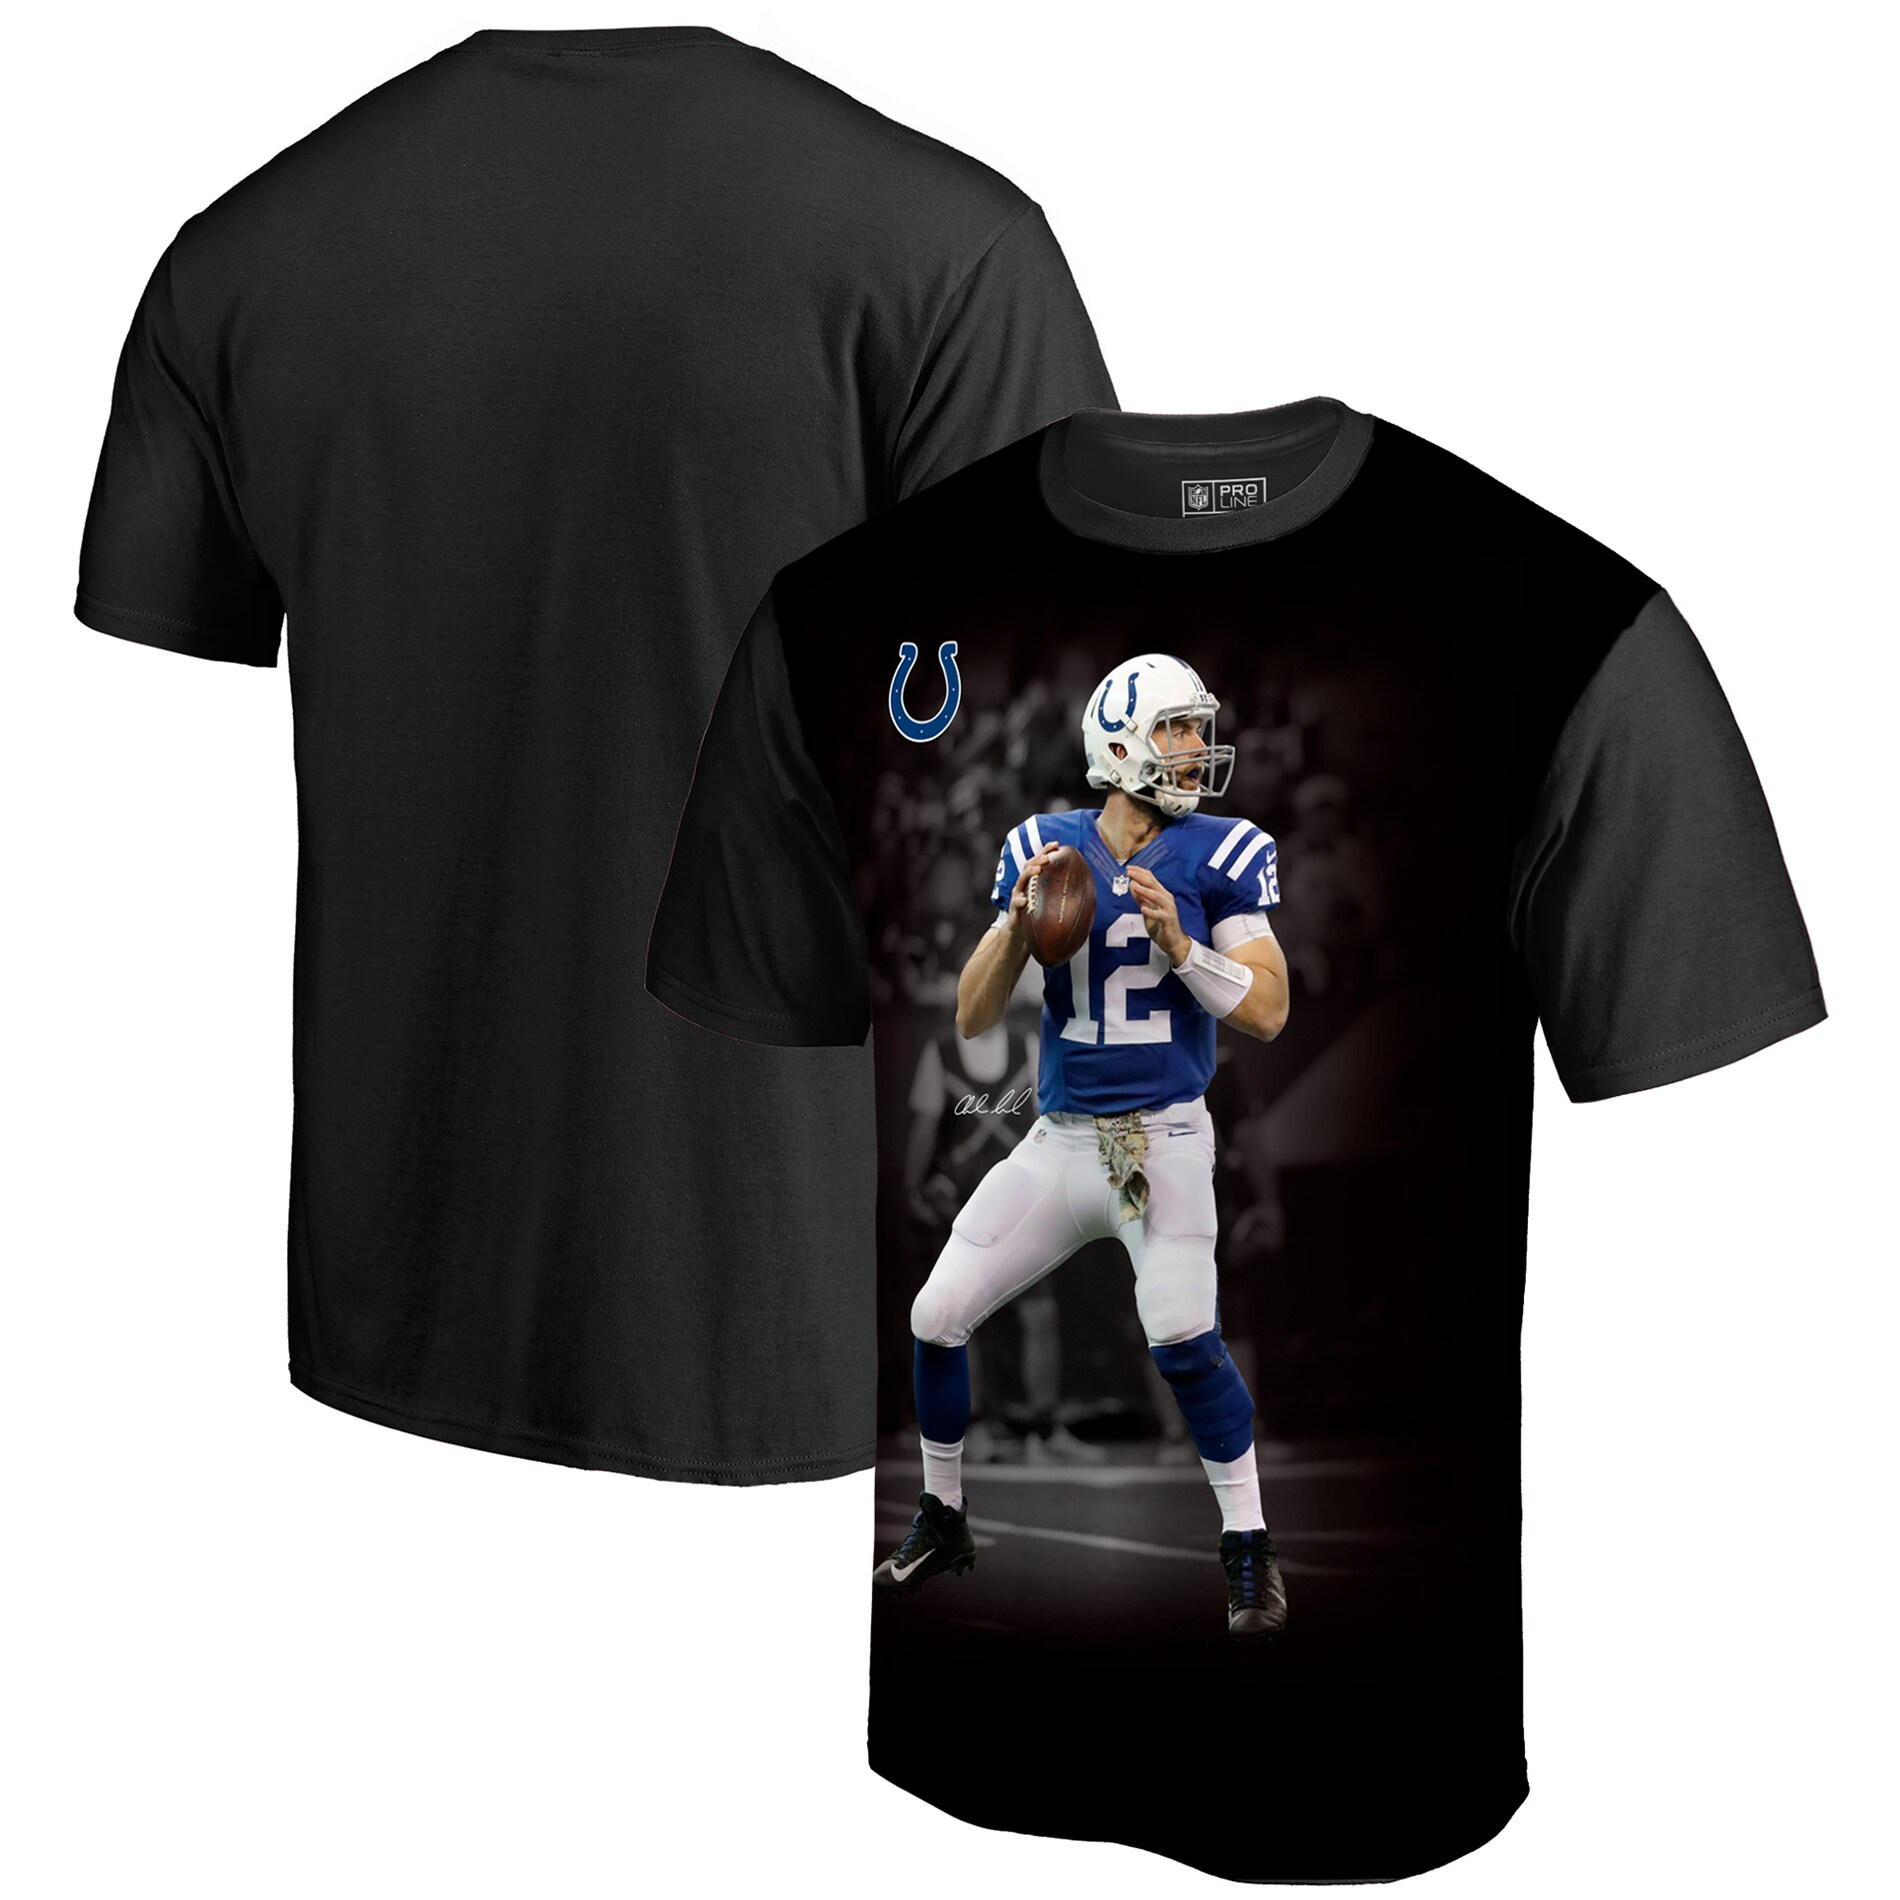 Andrew Luck Indianapolis Colts NFL Pro Line by Fanatics Branded NFL Player Sublimated Graphic T-Shirt - Black